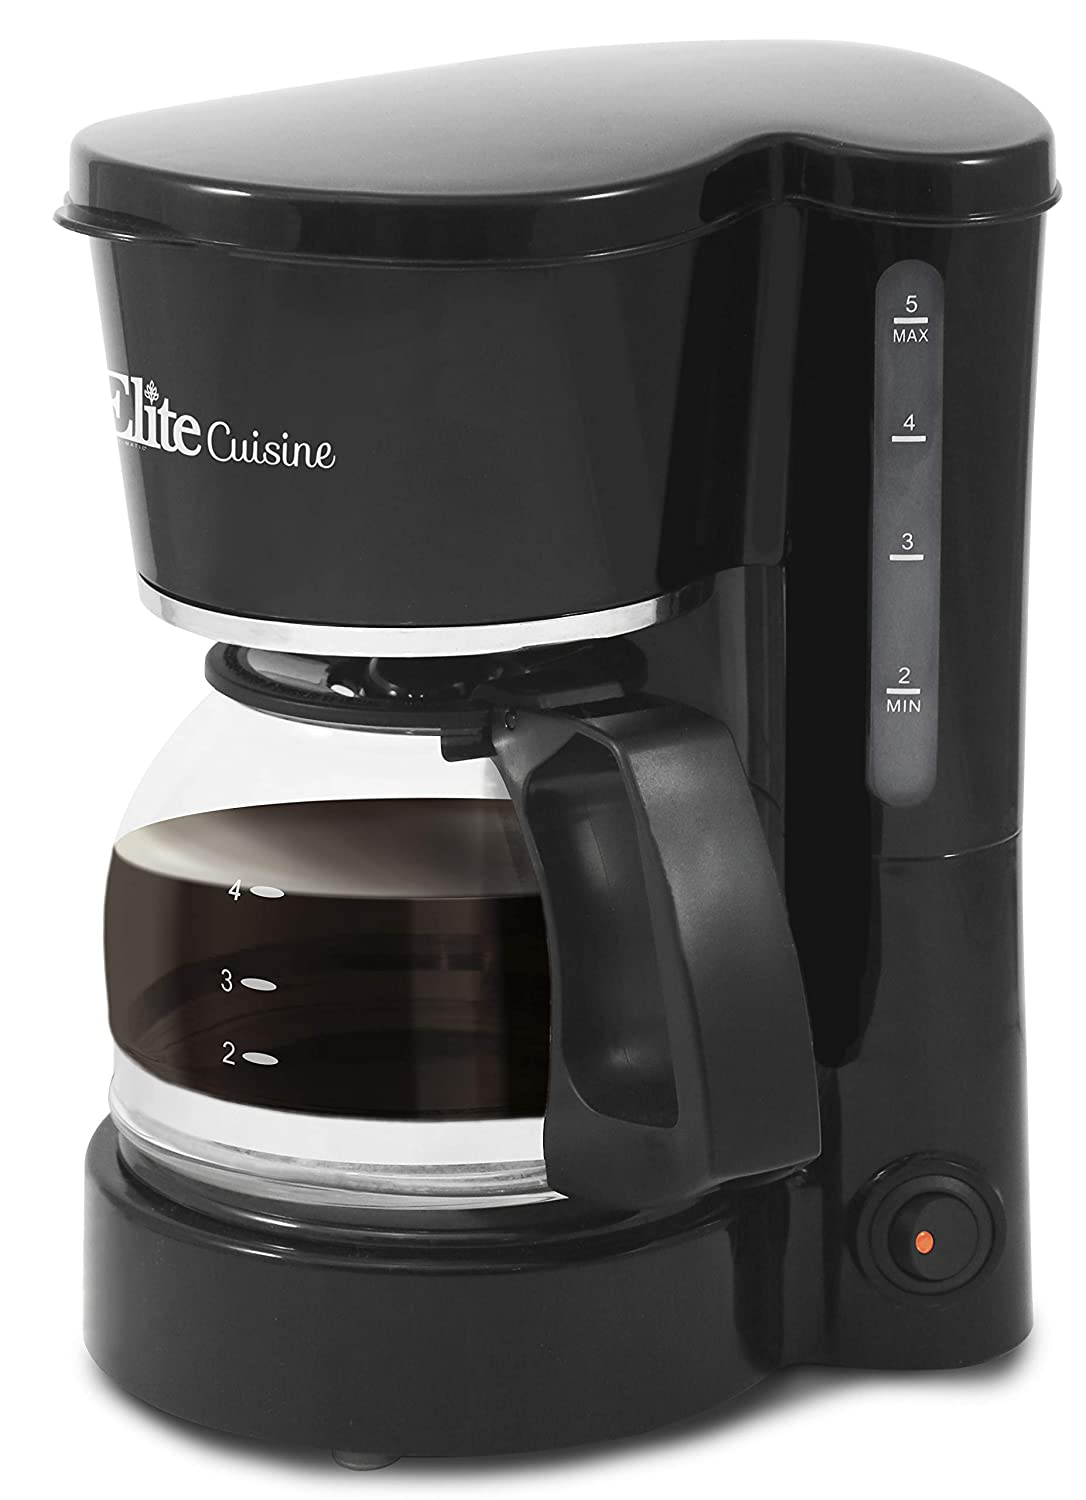 Elite Cuisine EHC-5055 Automatic Brew & Drip Coffee Maker with Pause N Serve Reusable Filter, On/Off Switch, Water Level Indicator, 5 Cup Capacity, Black